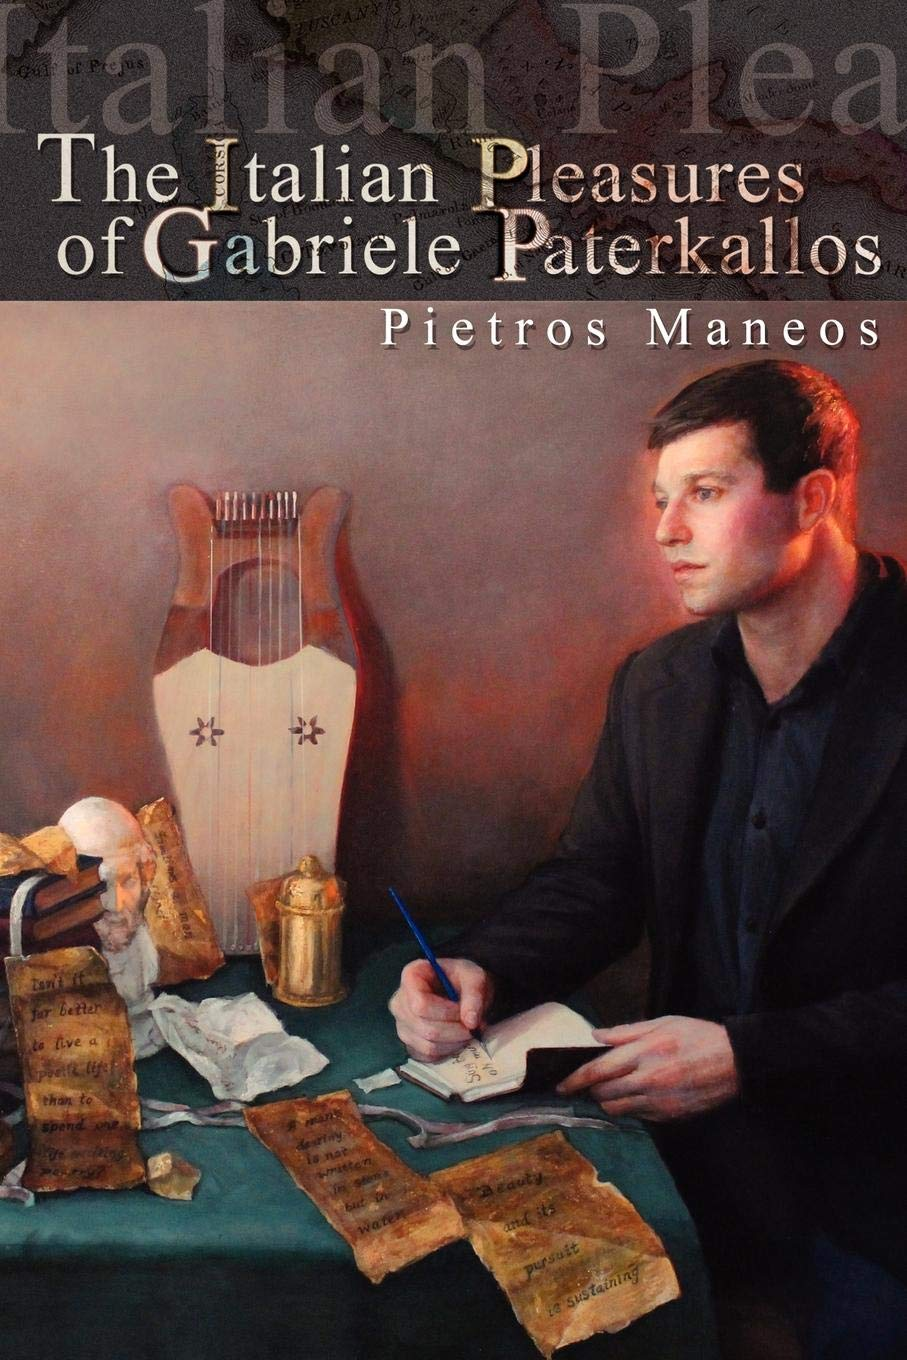 The Italian Pleasures of Gabriele Paterkallos